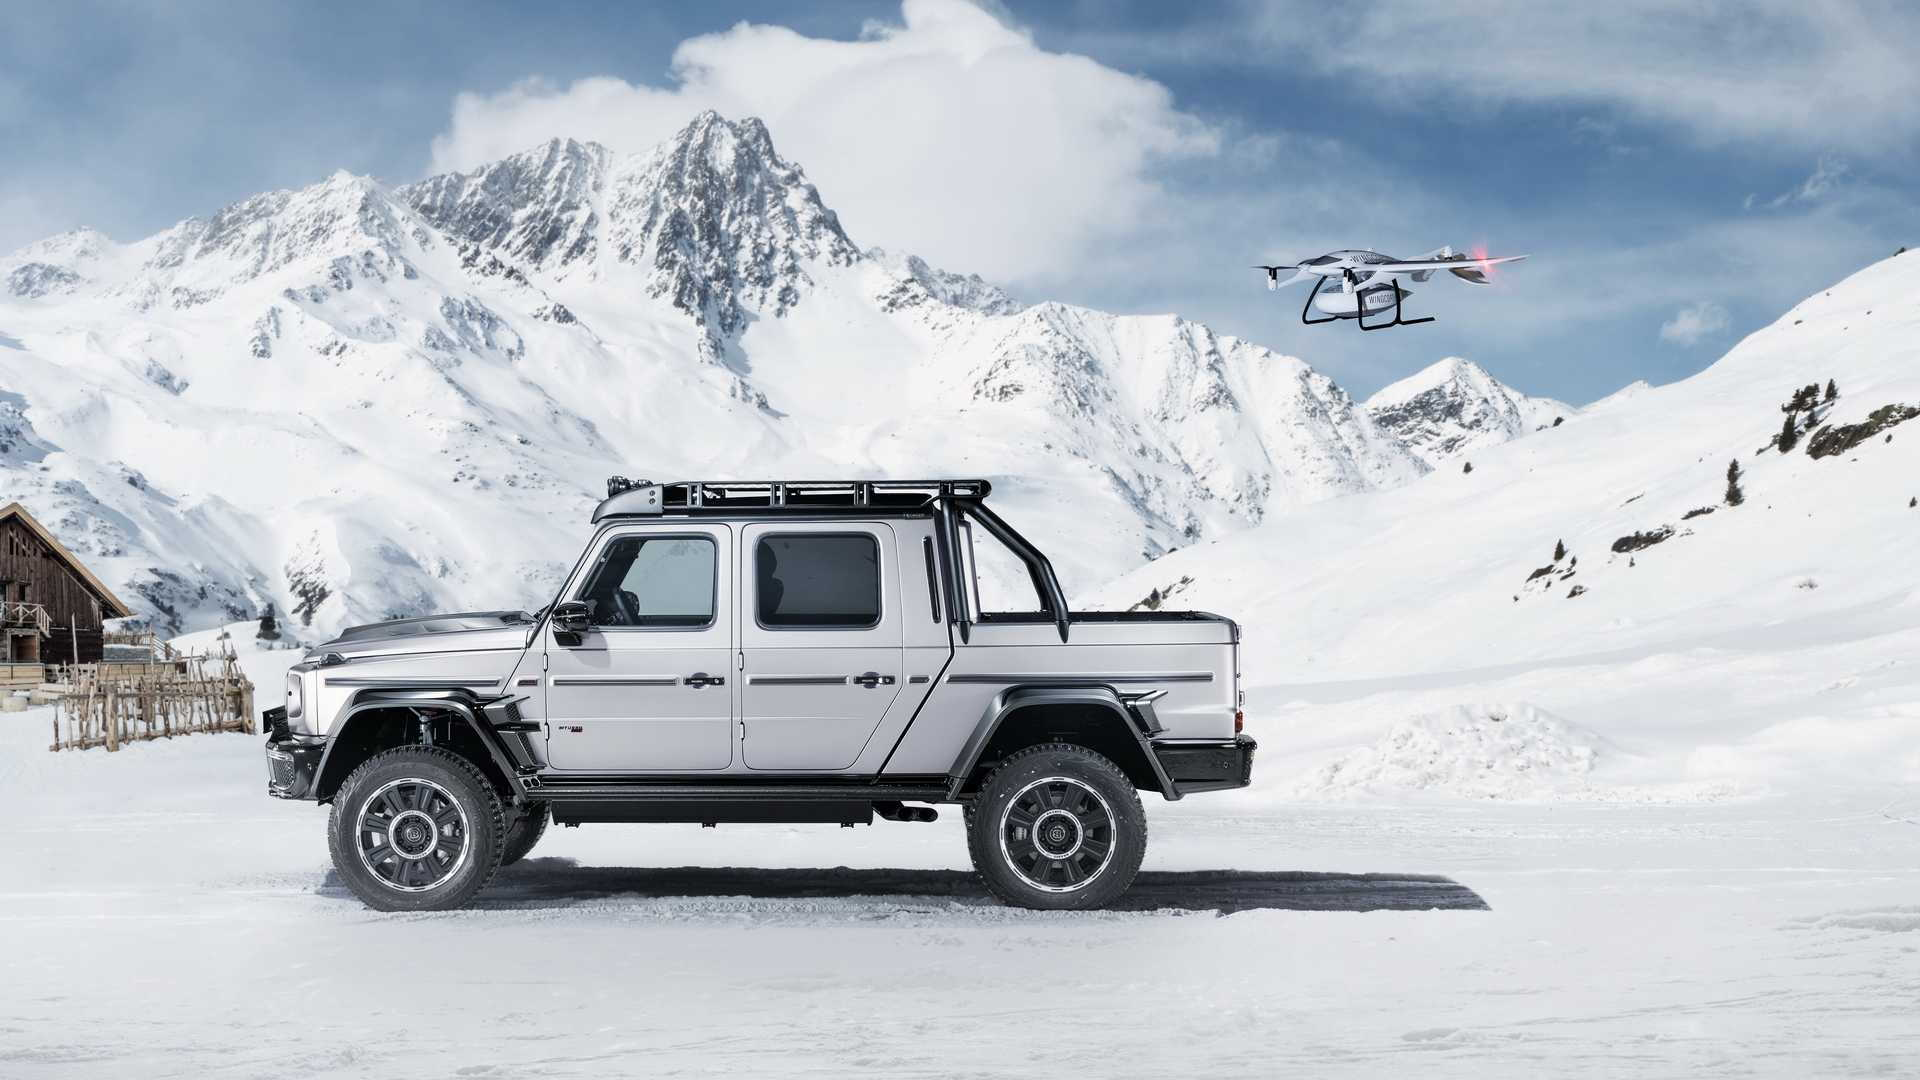 Brabus XLP Adventure 800 based on the 2020 Mercedes-AMG G63